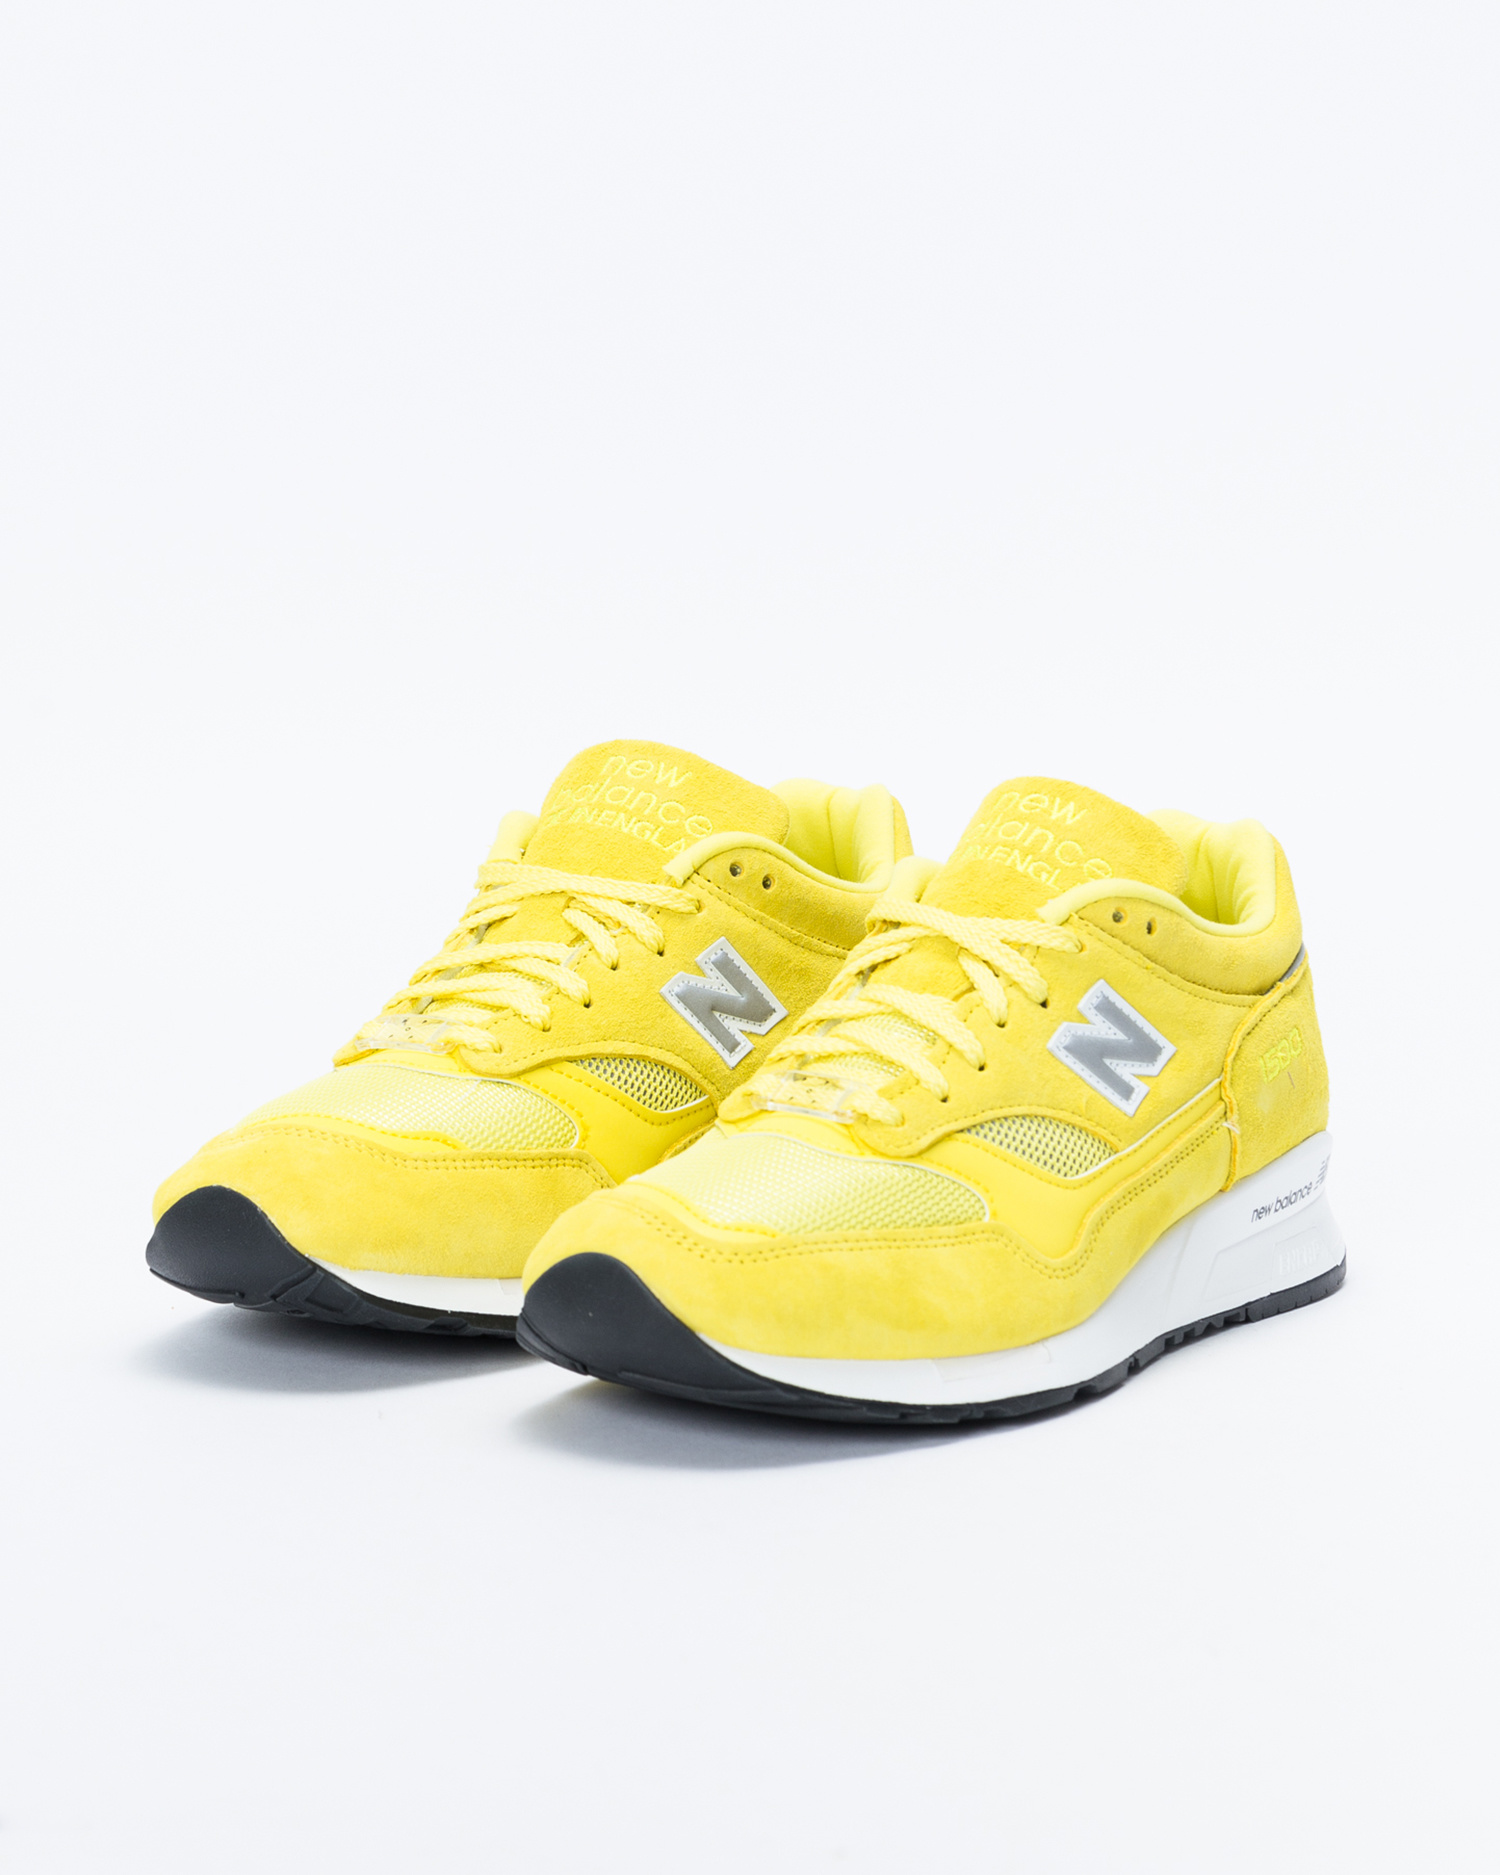 New Balance x Pop Trading Co M1500 Electric Yellow